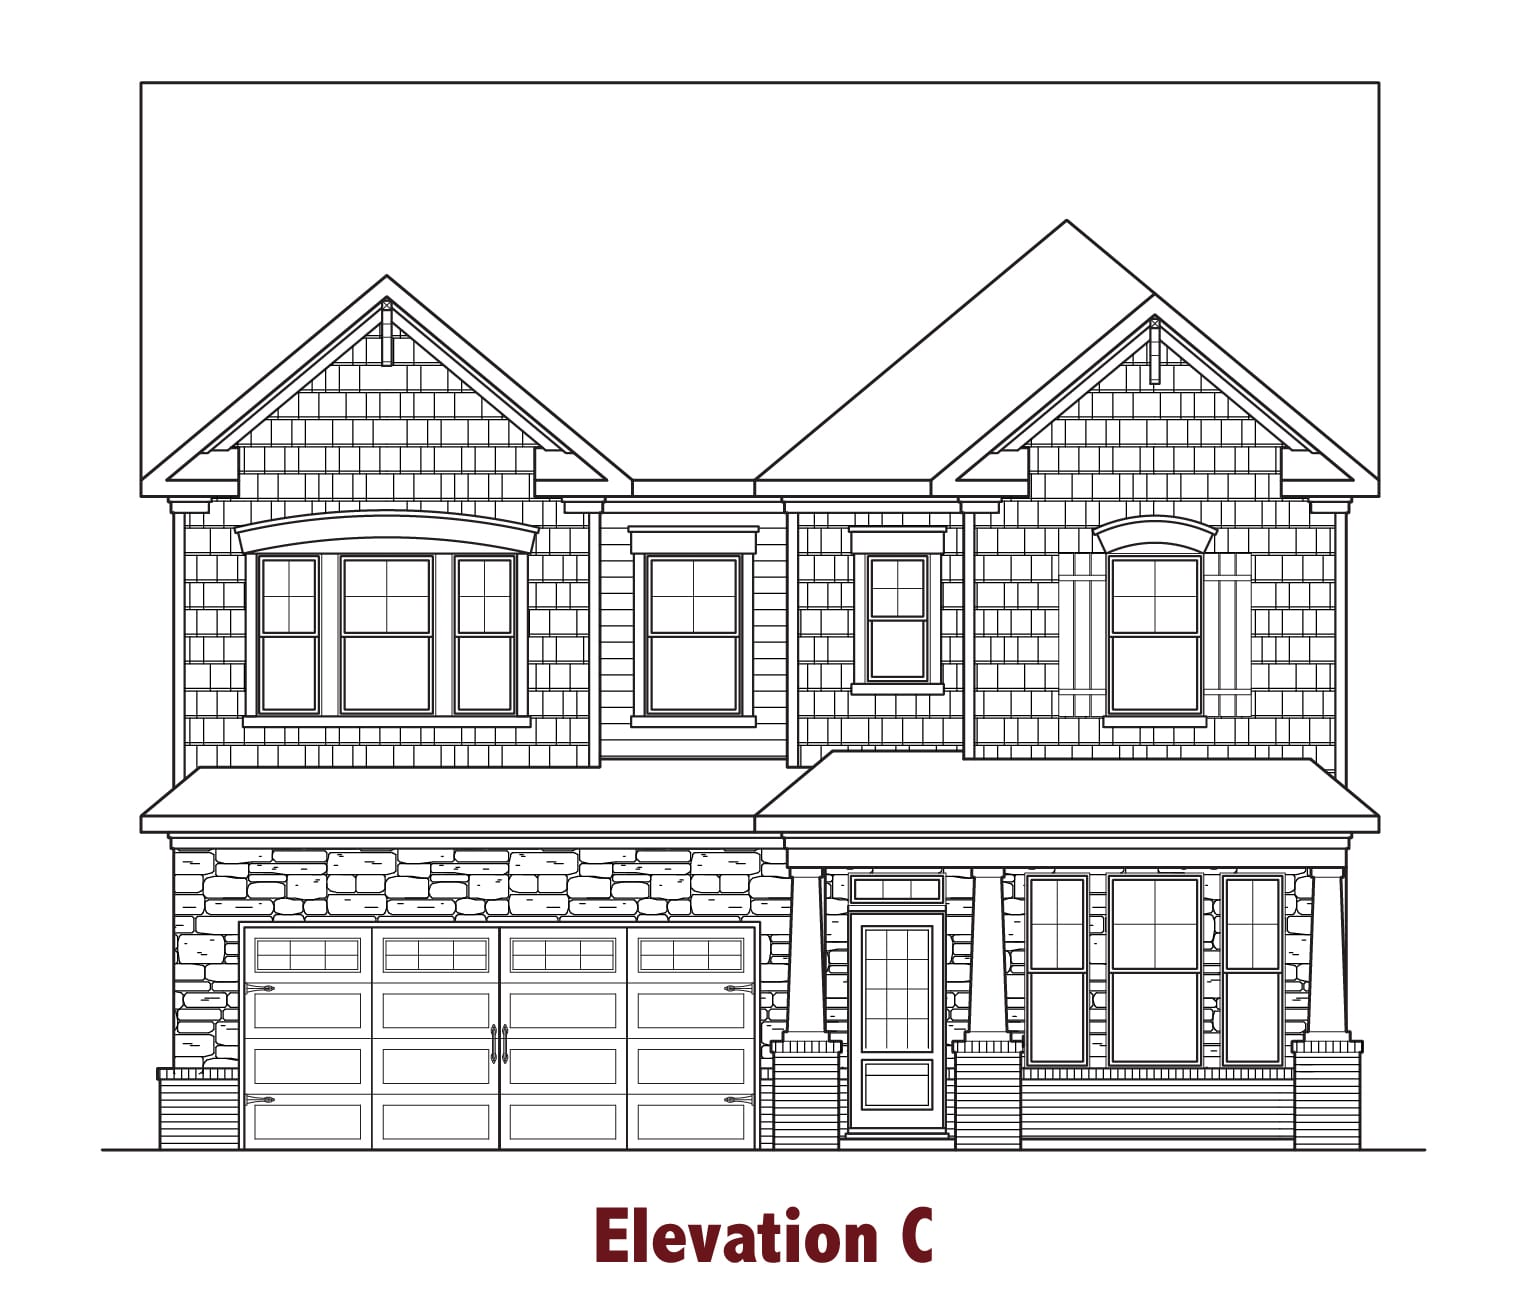 Lenox elevations Image